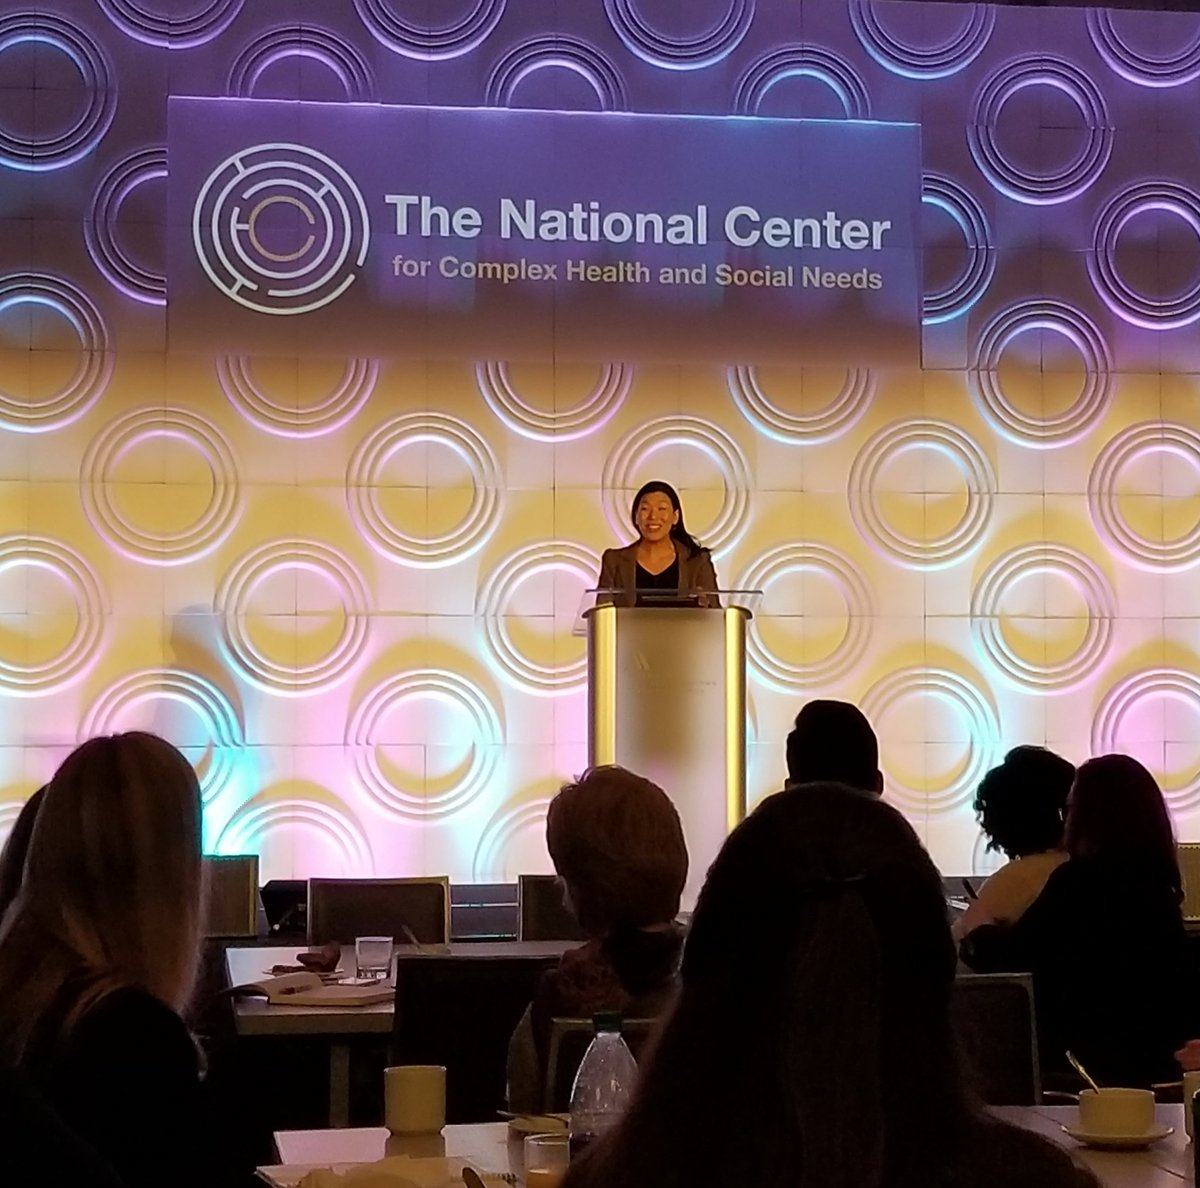 At #CenteringCare18 the keynote speaker @aijenpoo had the room in tears before 8 am hearing and sharing our care giver stories. Stay grounded in our human experience!<br>http://pic.twitter.com/mWlhAELsDE